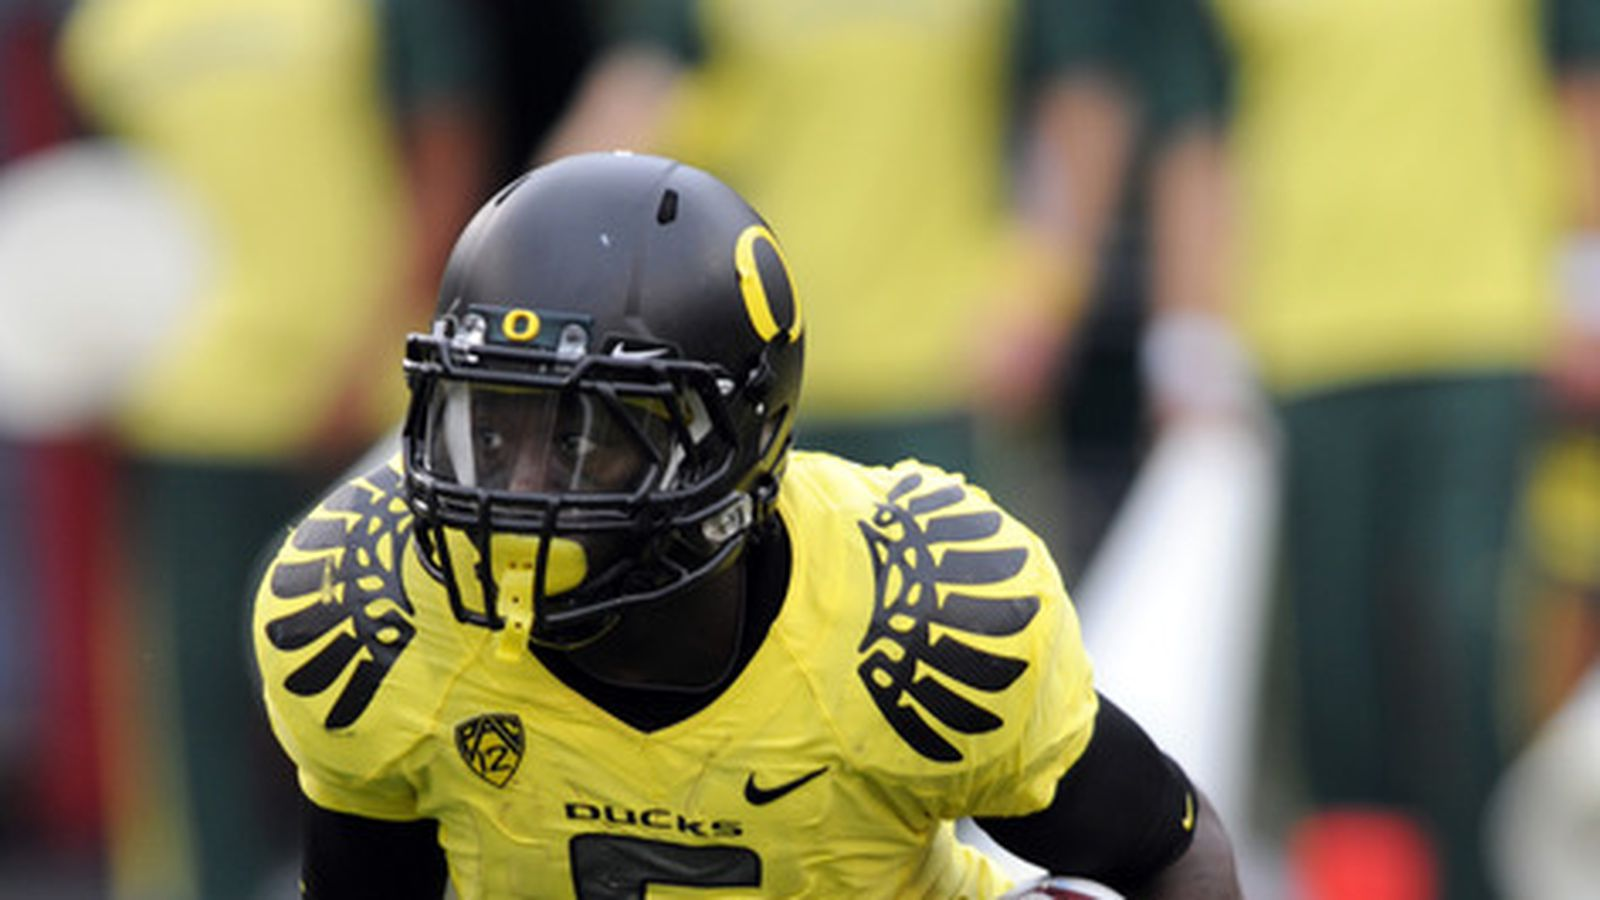 subs deanthony thomas - HD1600×900